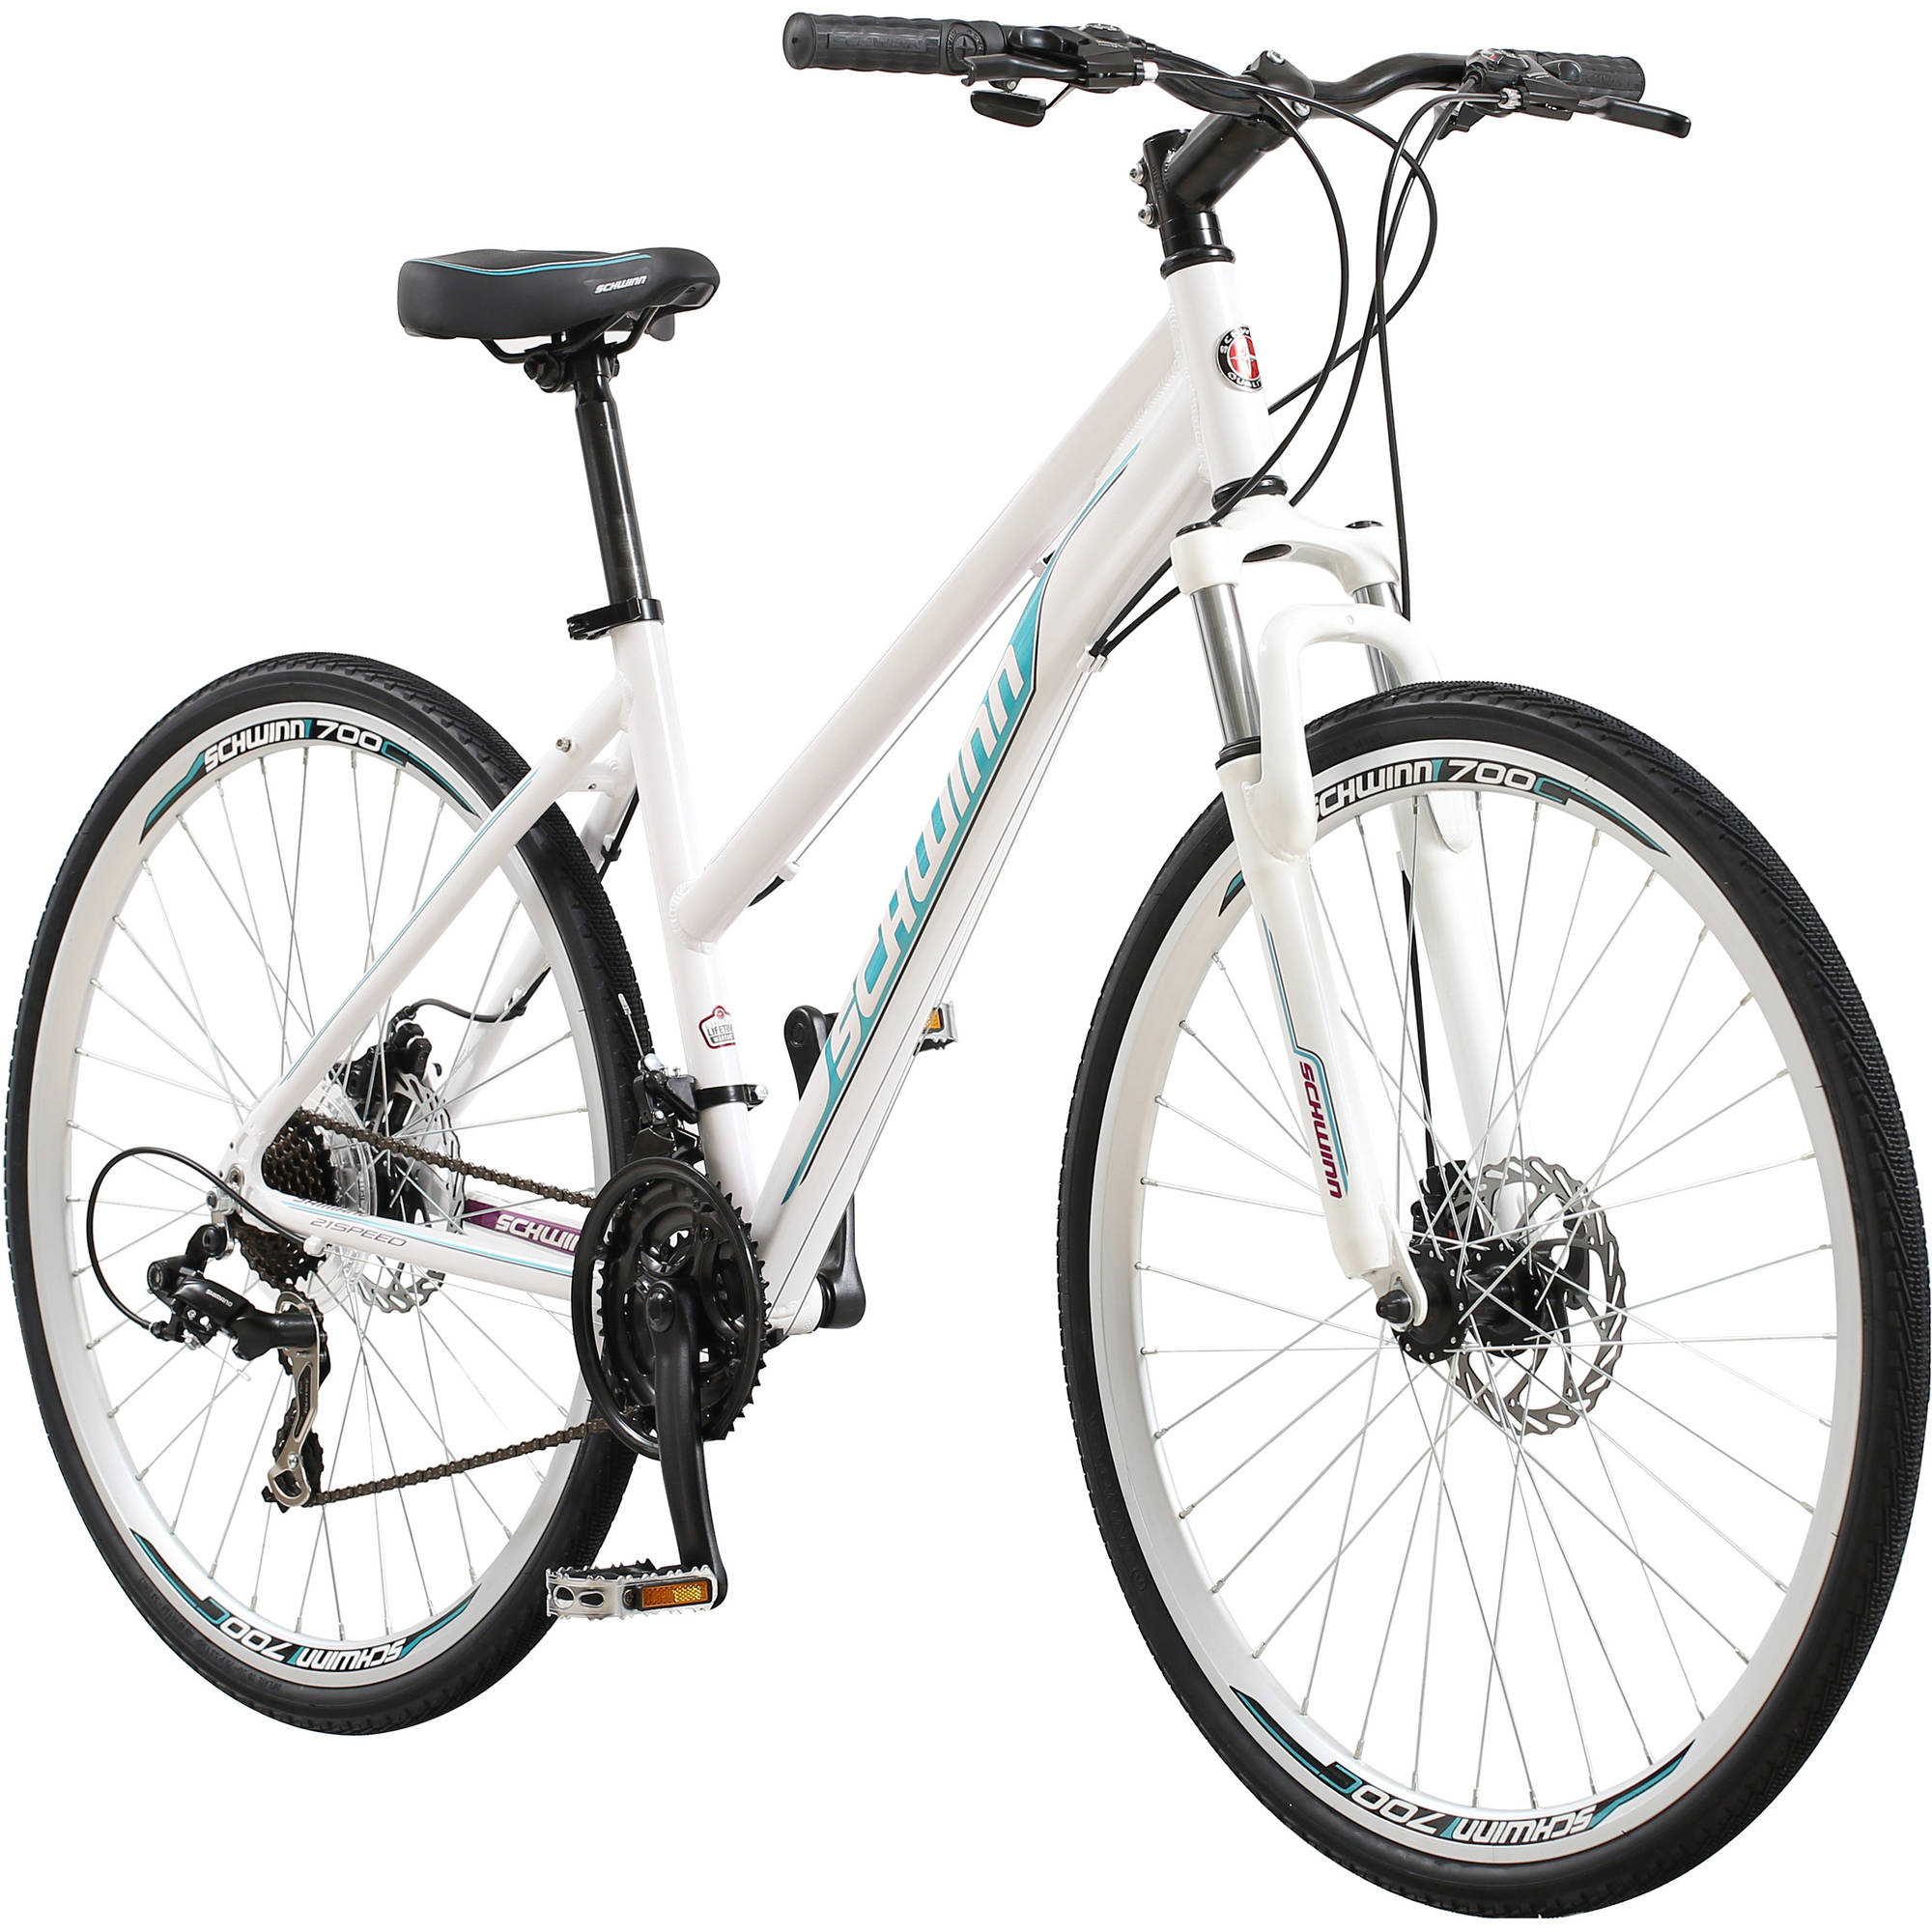 700C Schwinn DSB Women's Bike, White